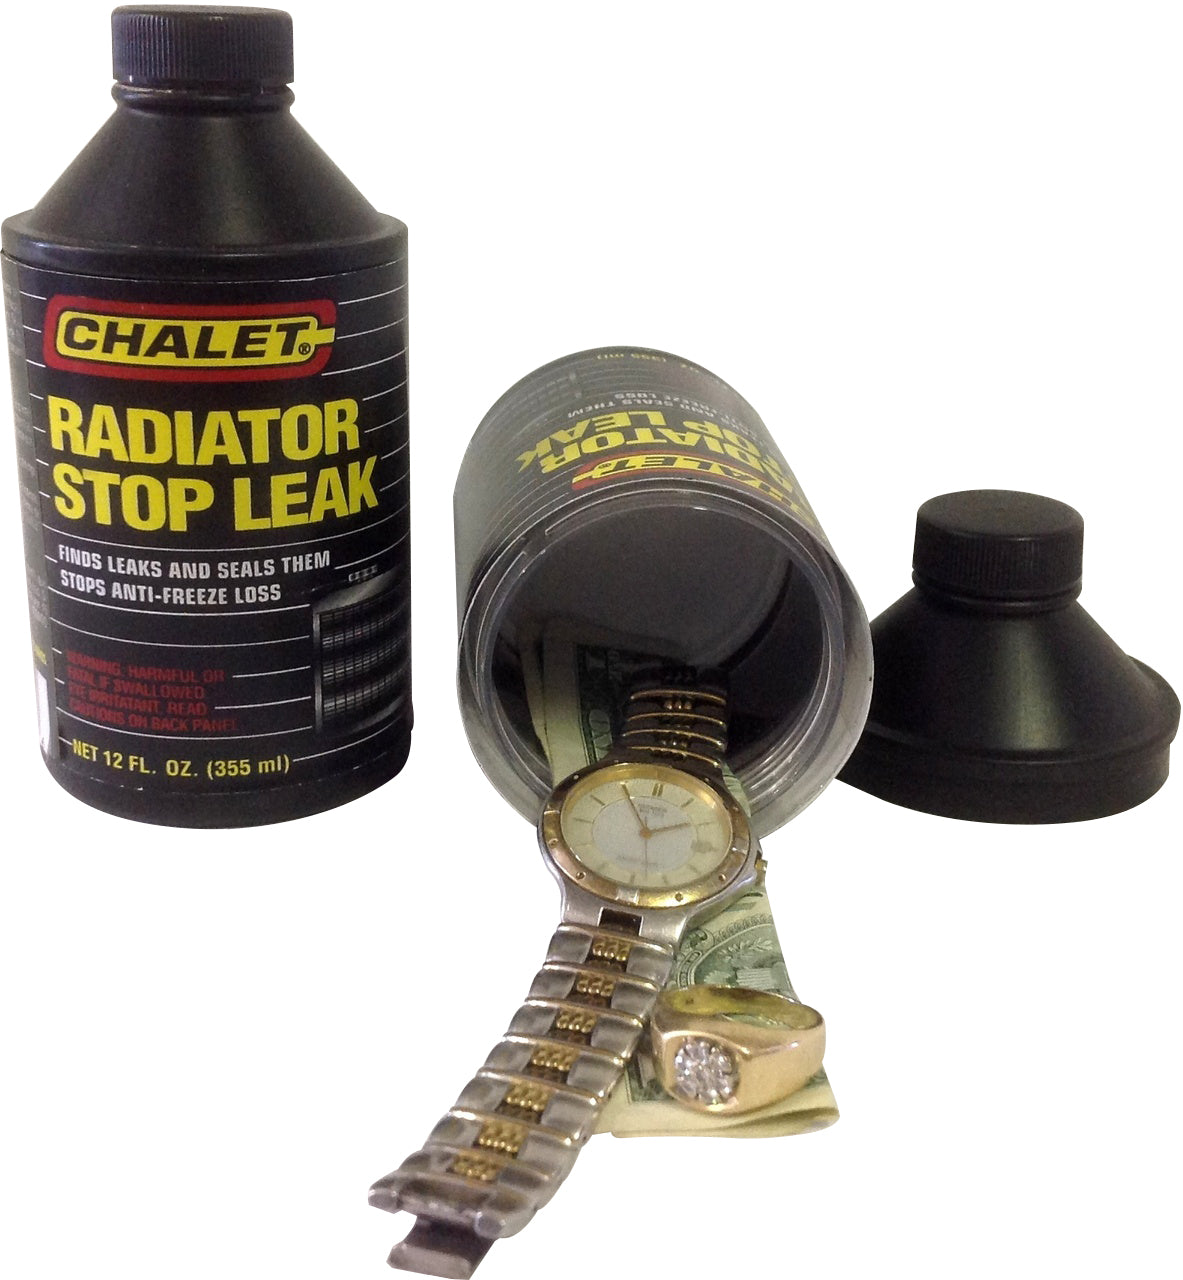 Chalet Radiator Stop Leak Diversion Safe